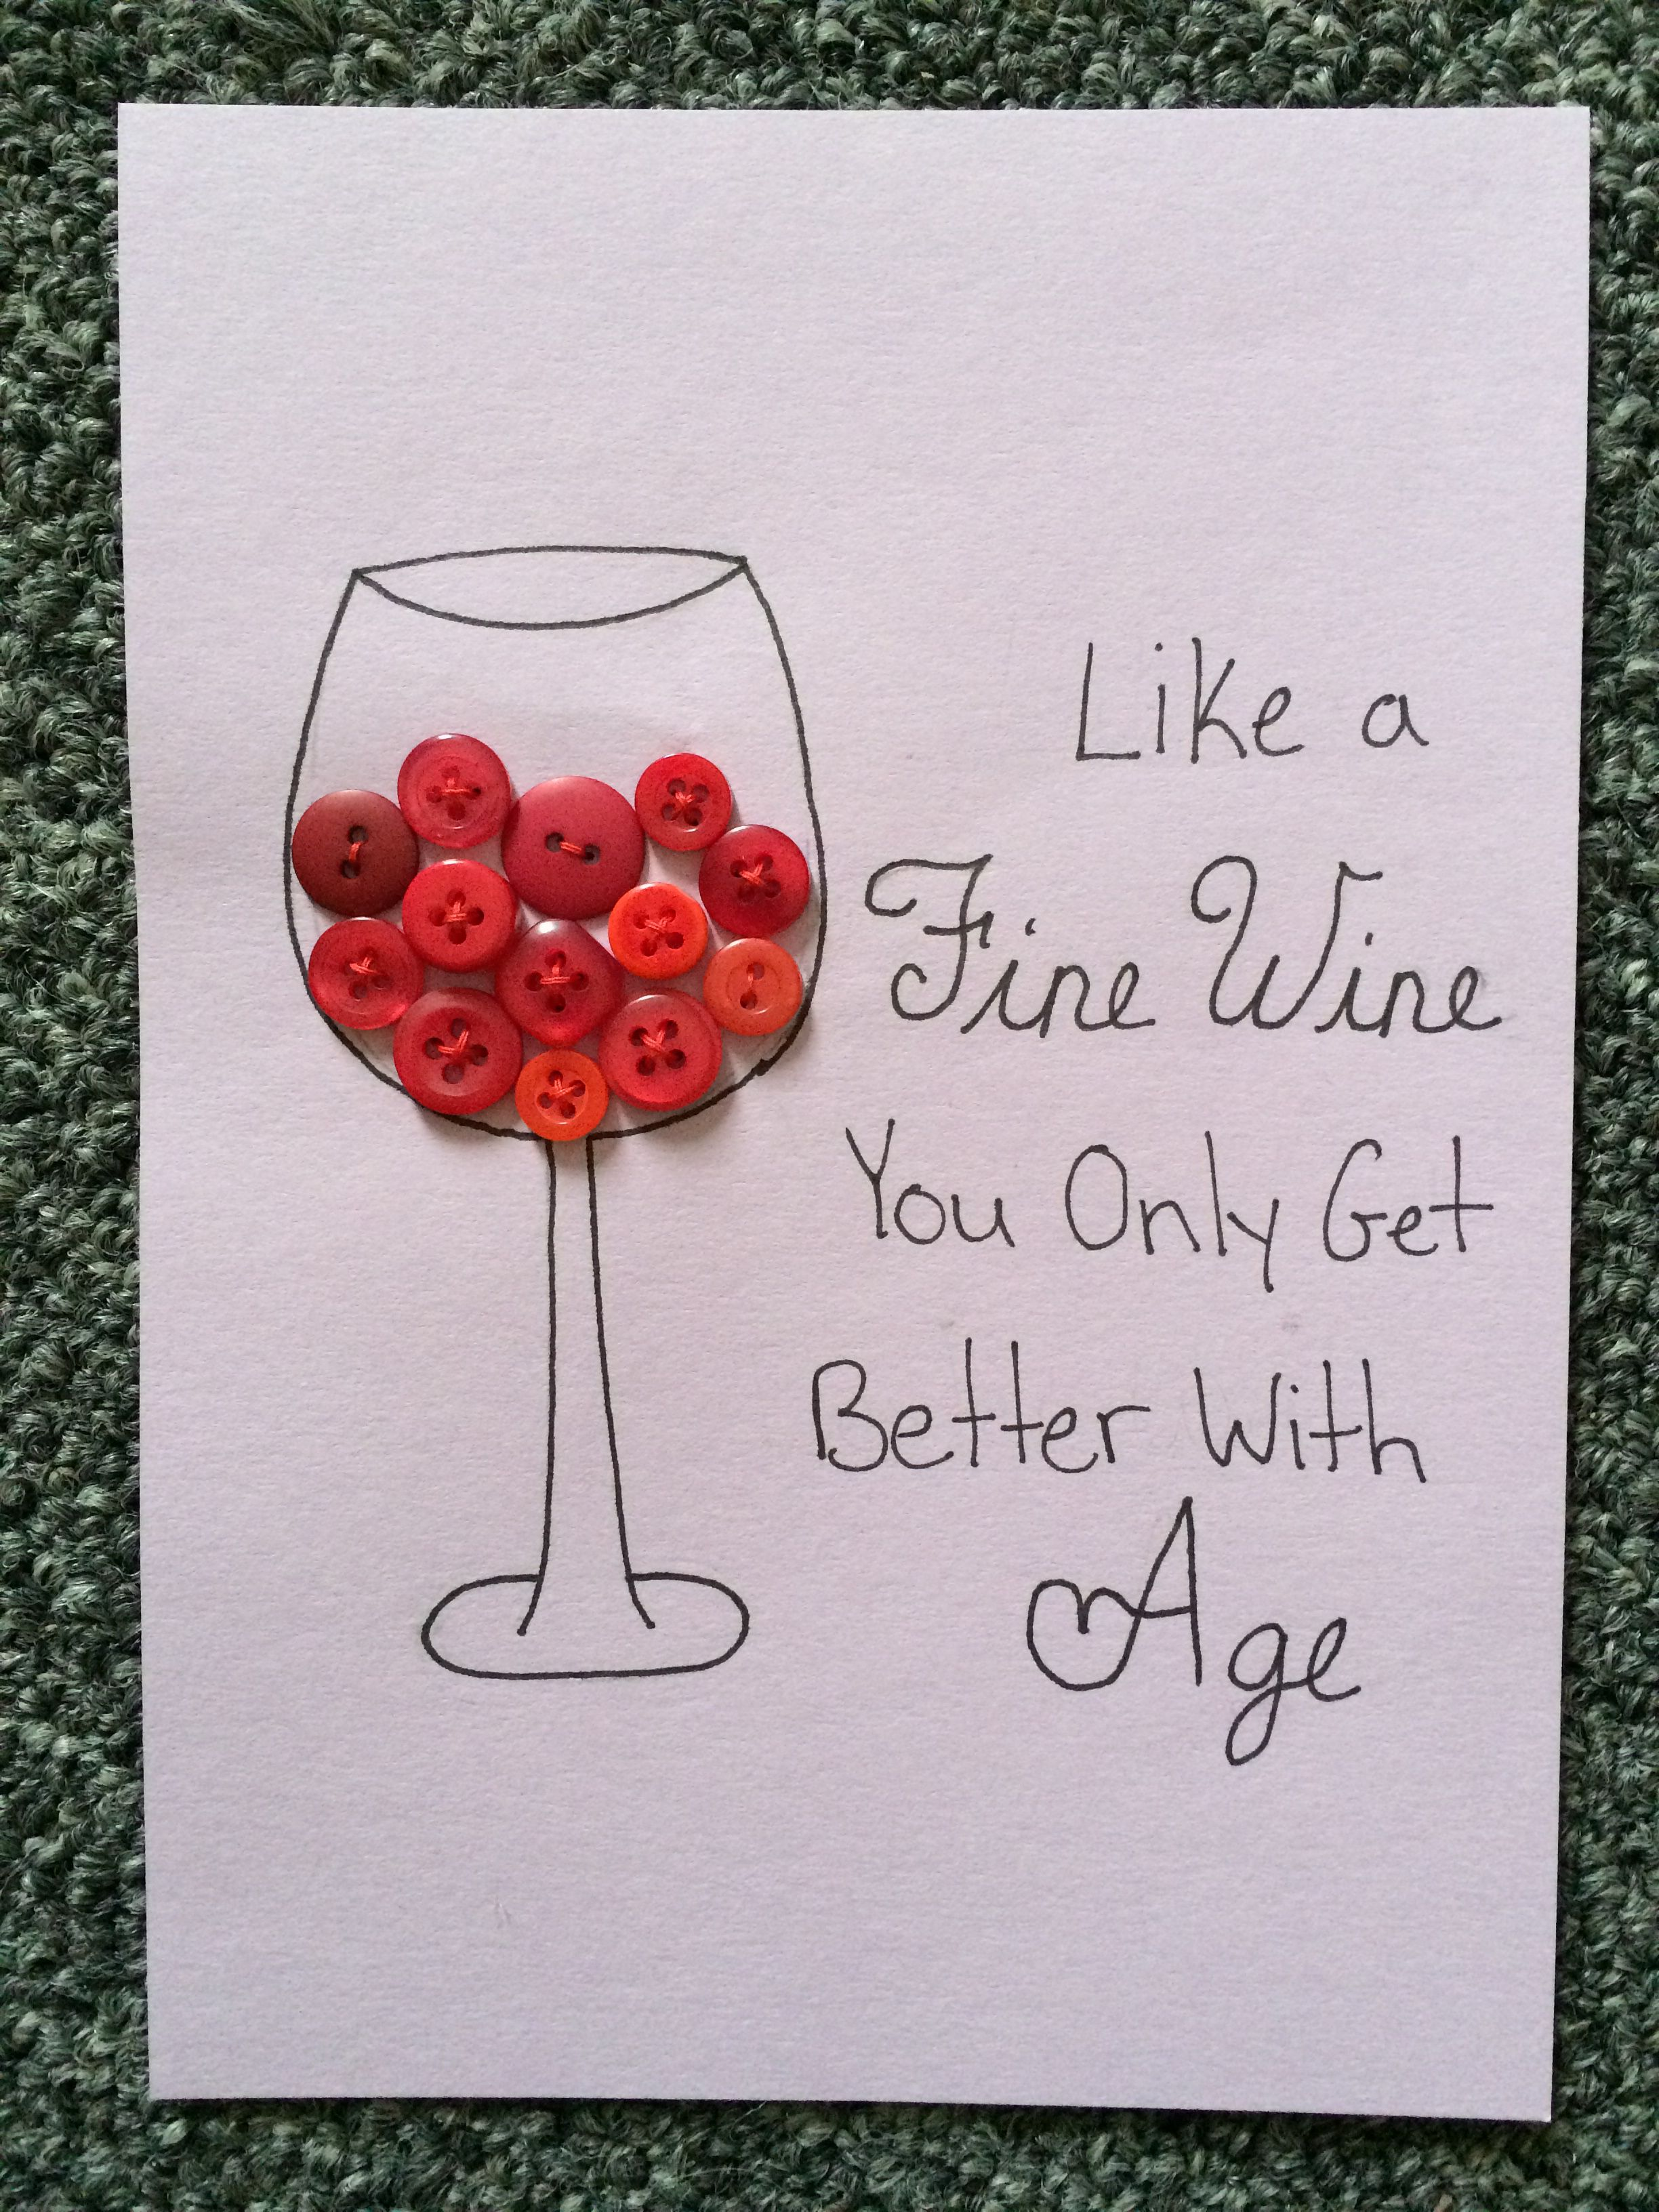 DIY Birthday Card Wine Glass Sown Red Buttons Like A Fine You Only Get Better With Age